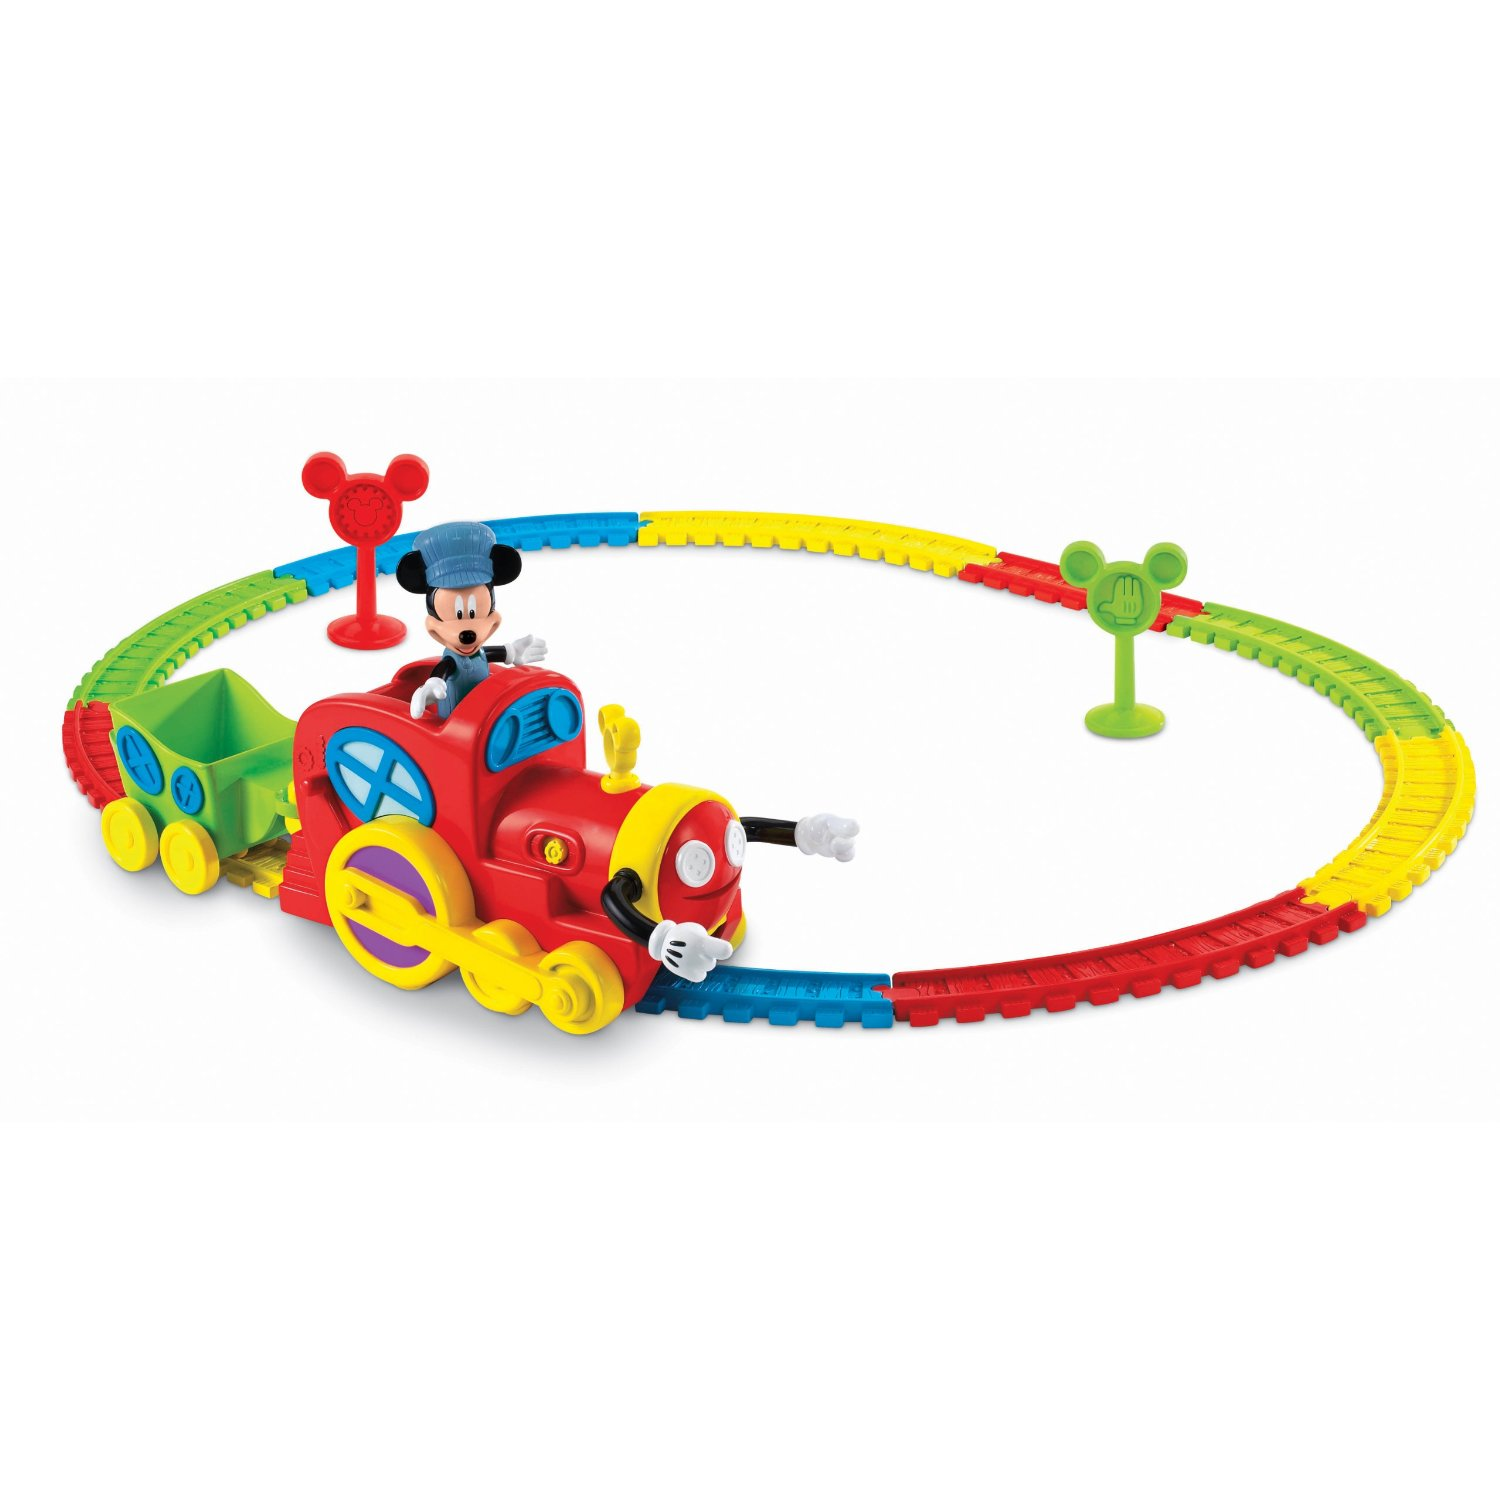 Choo choo train pictures clipart best for Disney mickey mouse motorized choo choo train with tracks